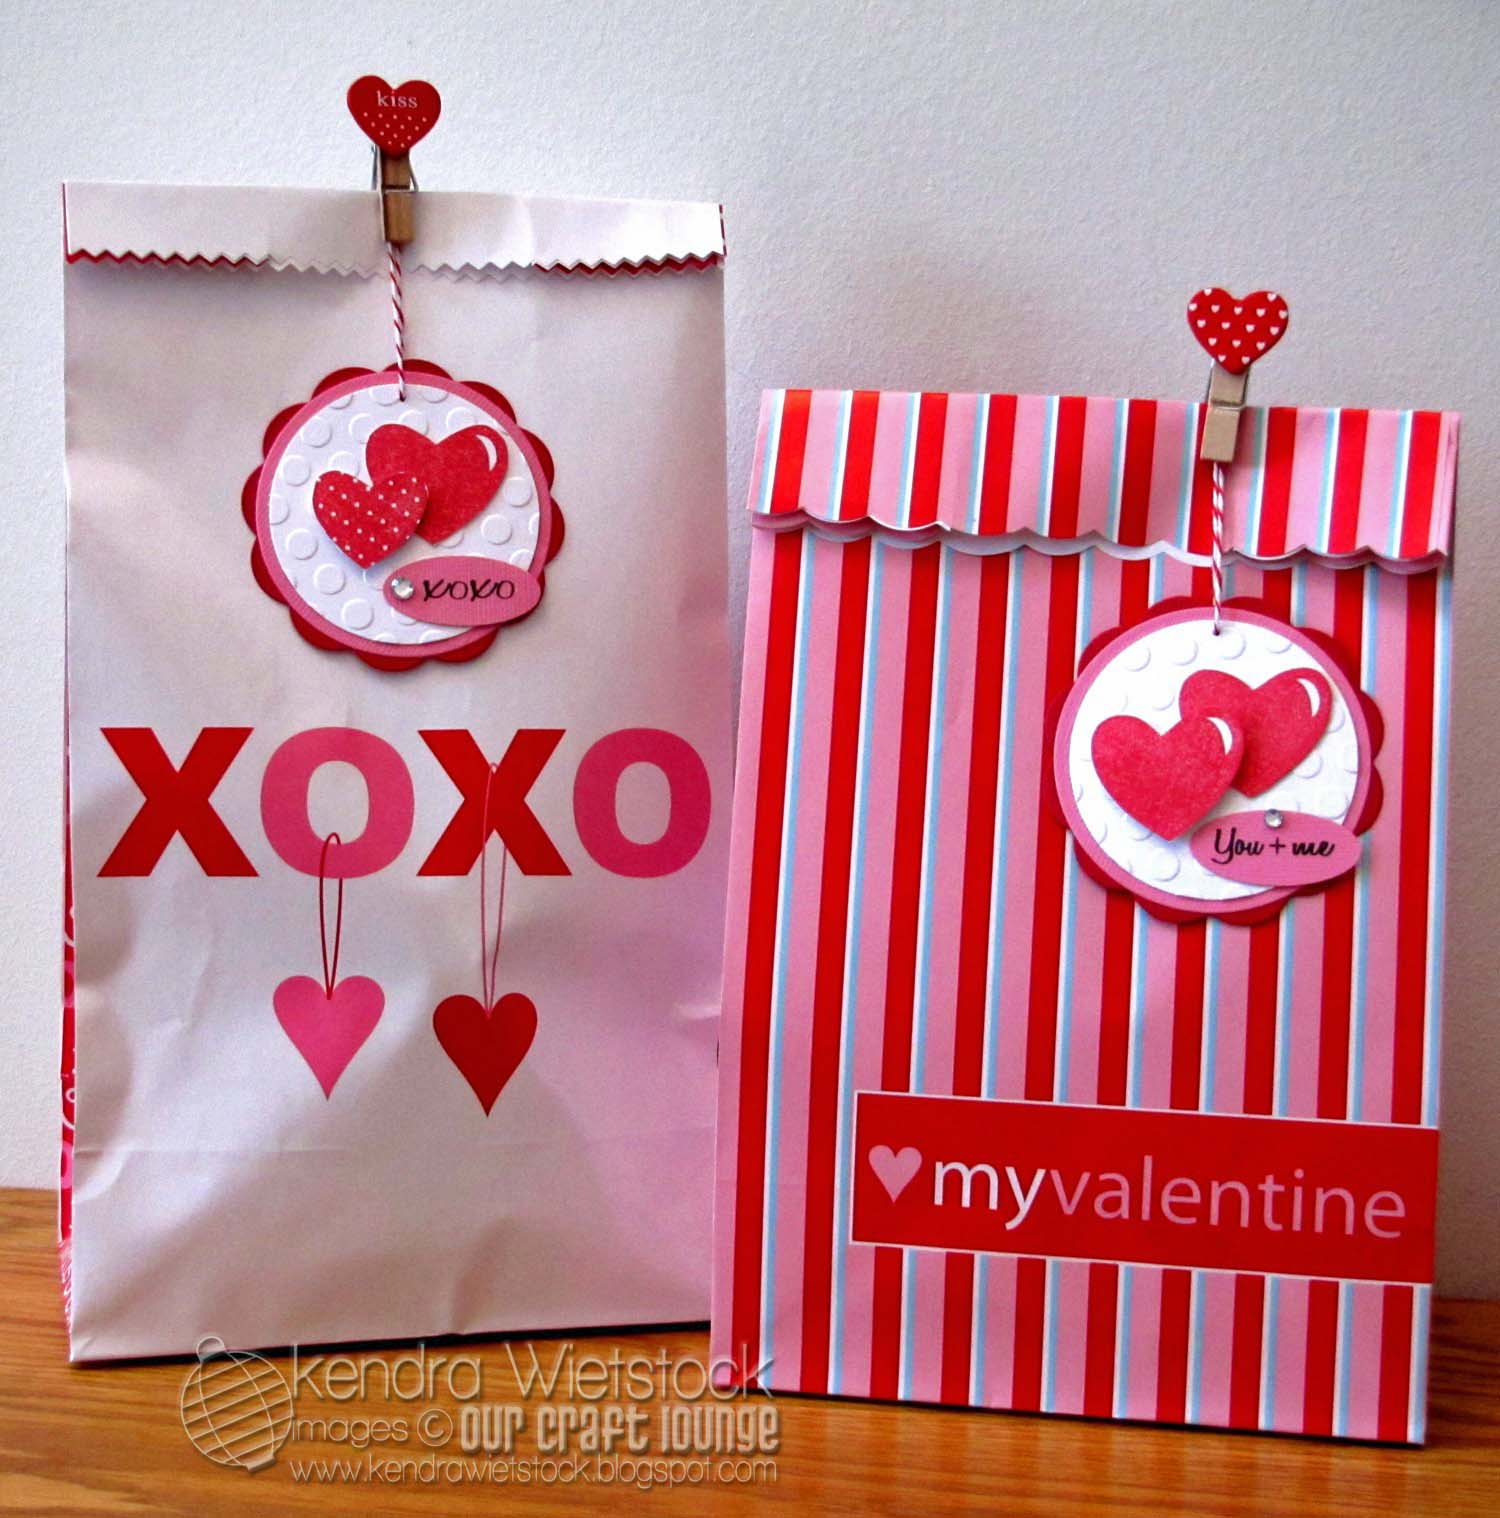 ... Valentines Day Gift Ideas .Good Valentines Day Gifts For Guys Ideas